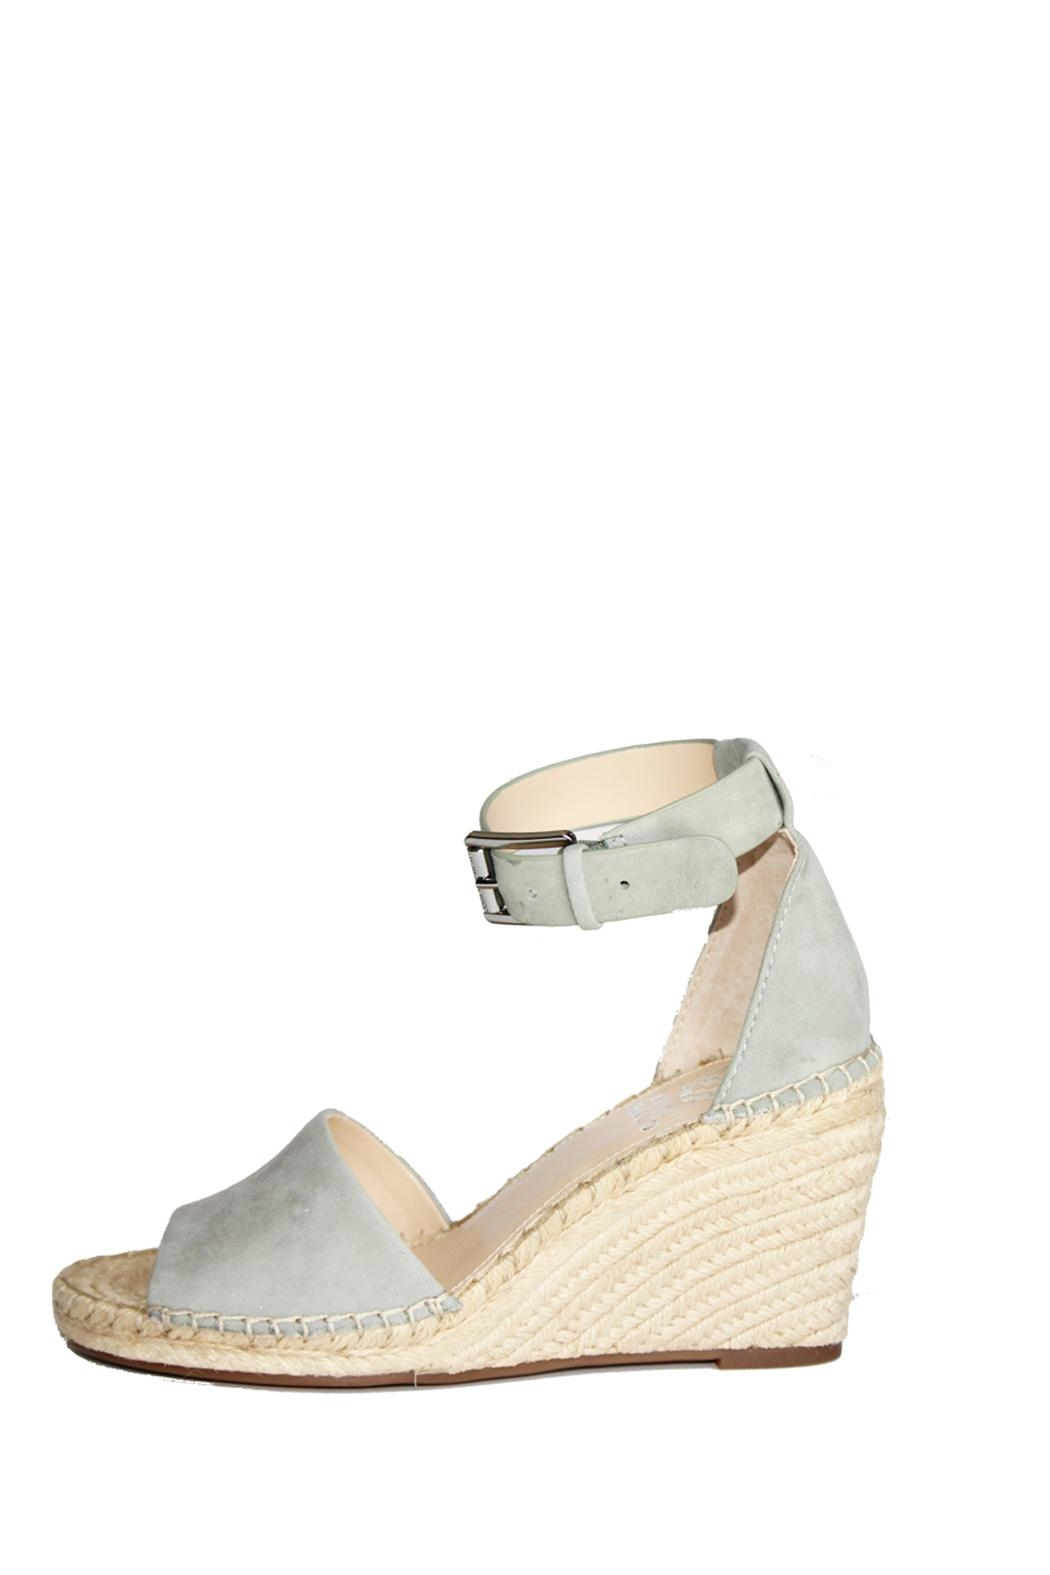 Vince Camuto Sandals - Side Cropped Image